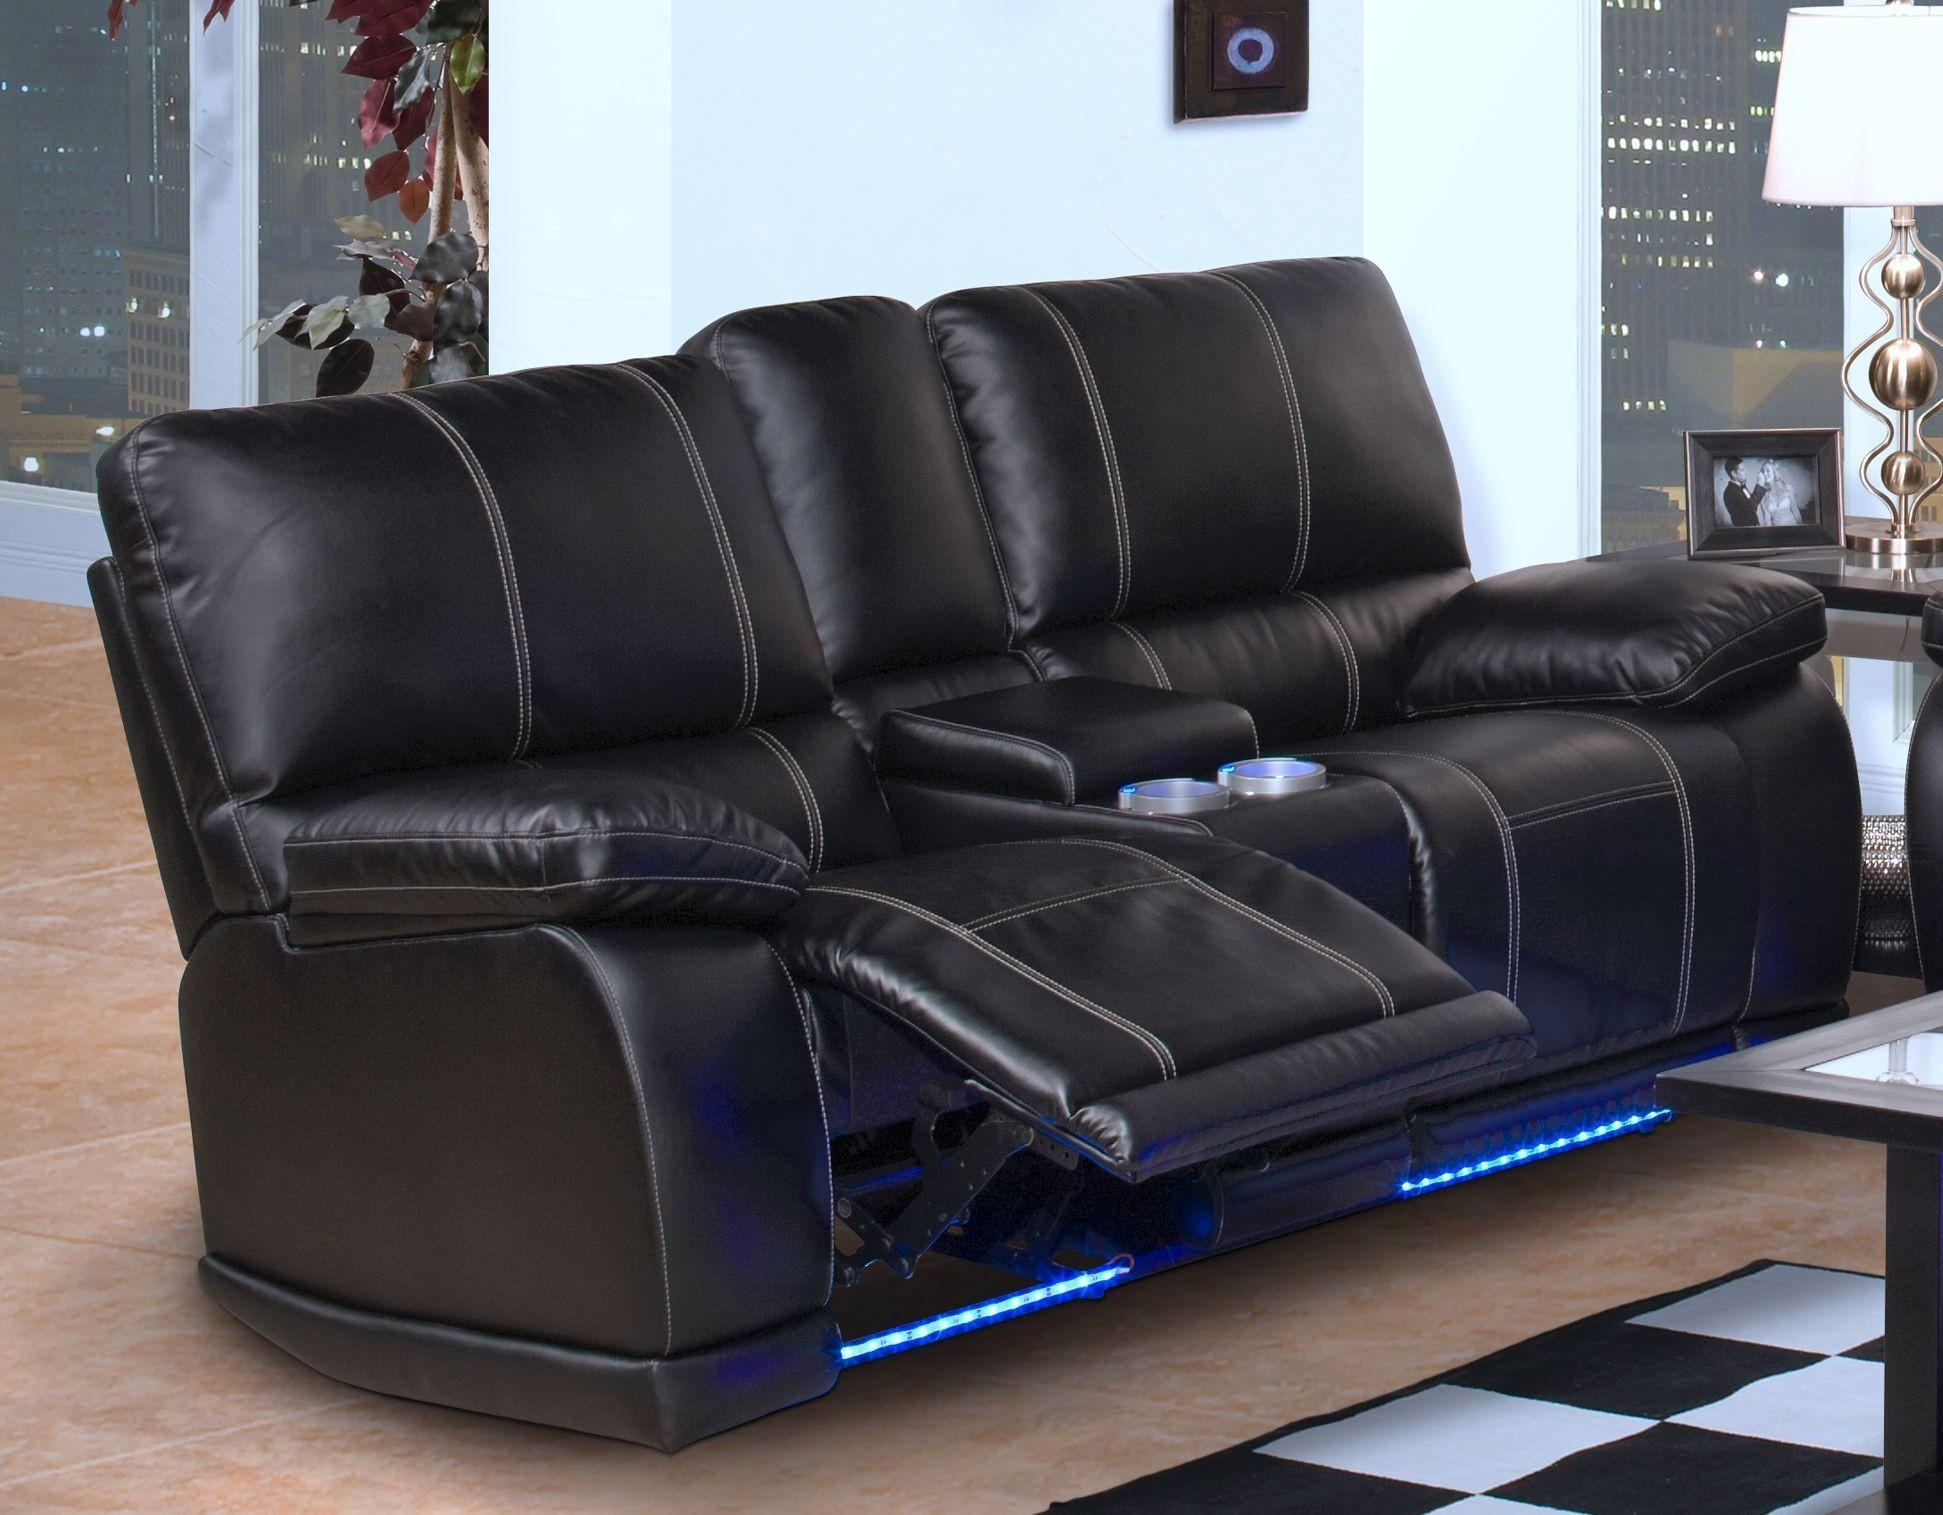 Black Reclining Sofa With Console | Tehranmix Decoration Throughout Sofas With Console (View 18 of 20)